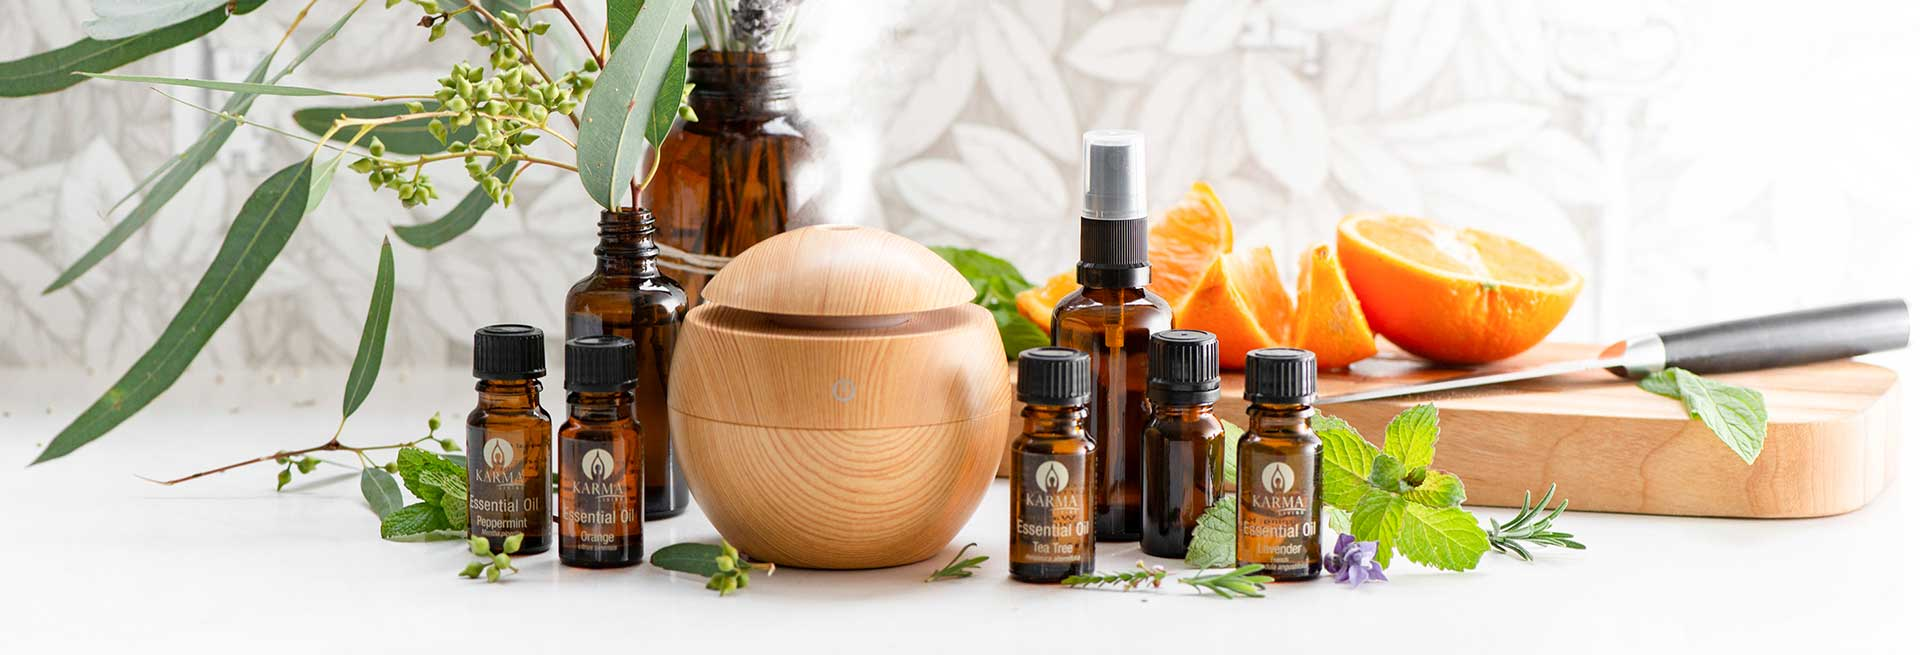 Aromatherapy, Gemstones, Diffusers, Lamps & More